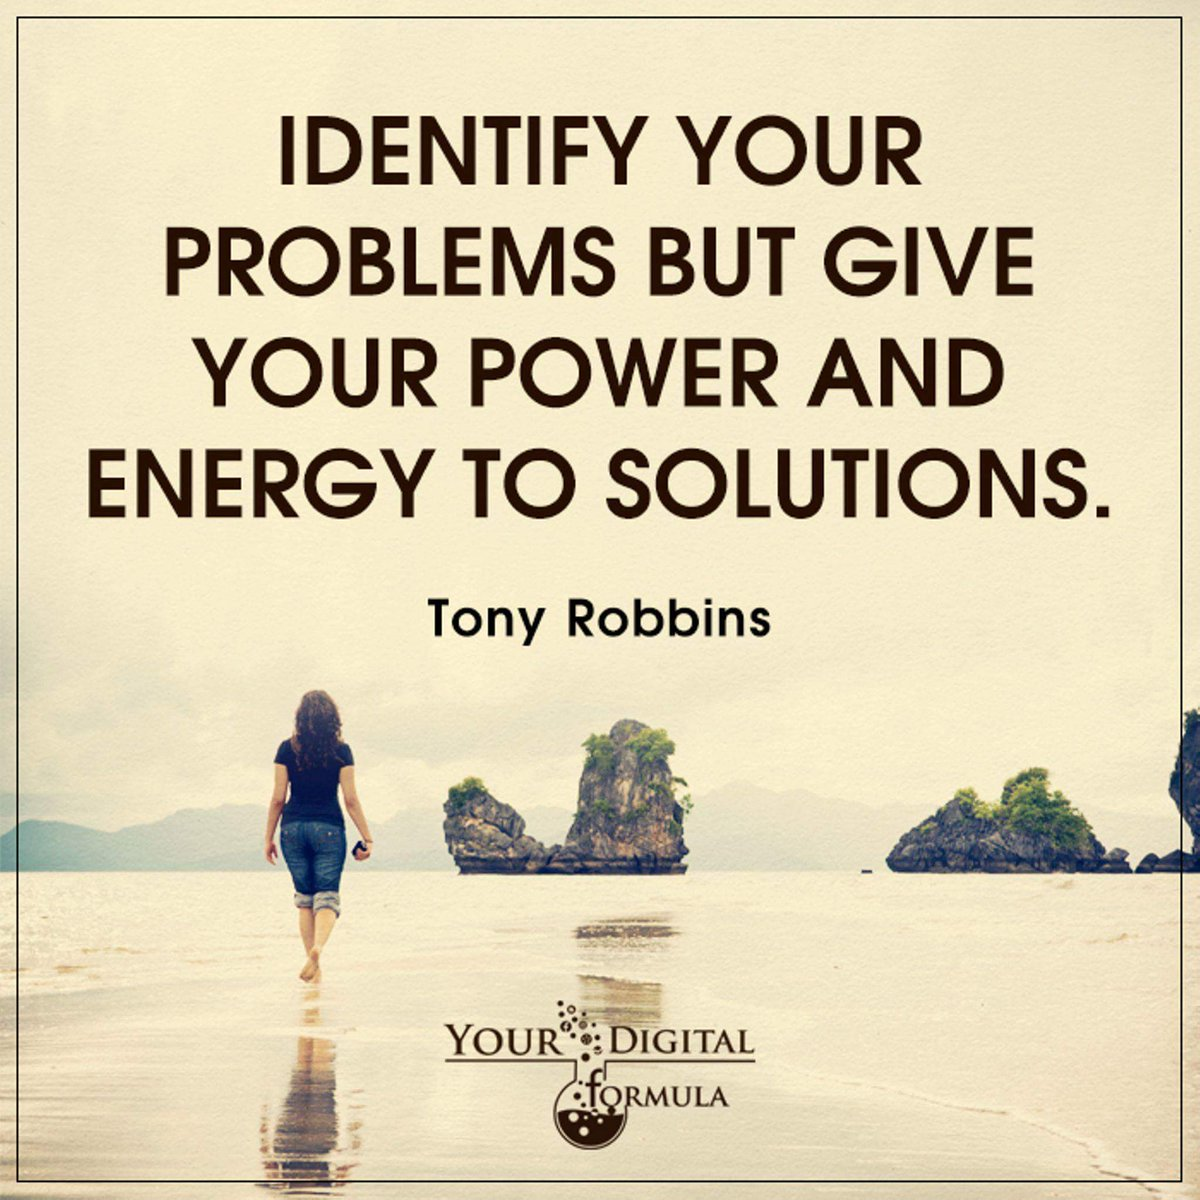 Give your power and energy to solutions. #ThinkBIGSundayWithMarsha  #makeyourownlane #spdc #defstar5 #Mpgvip #IQRTG<br>http://pic.twitter.com/ecRVmoogzt